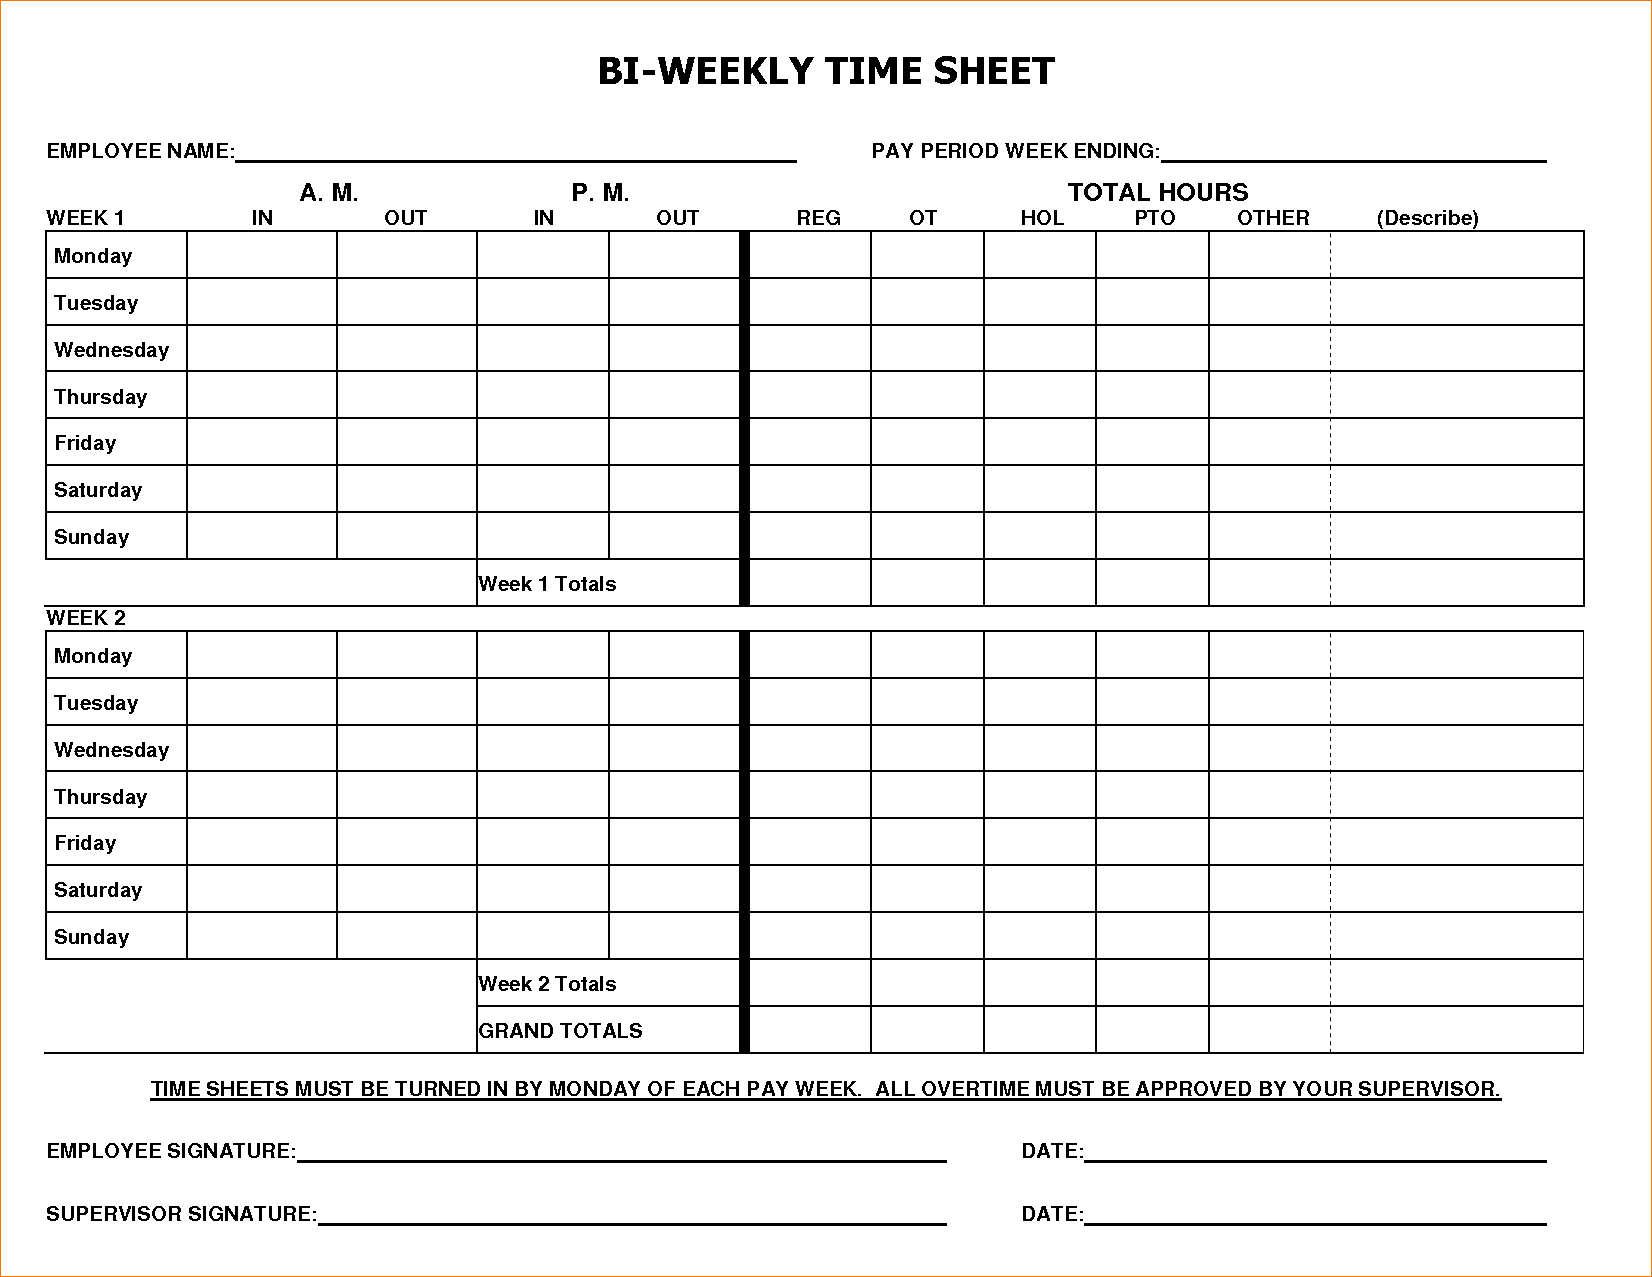 Times Sheet Template and 8 Bi Weekly Timesheet Template Timeline Template